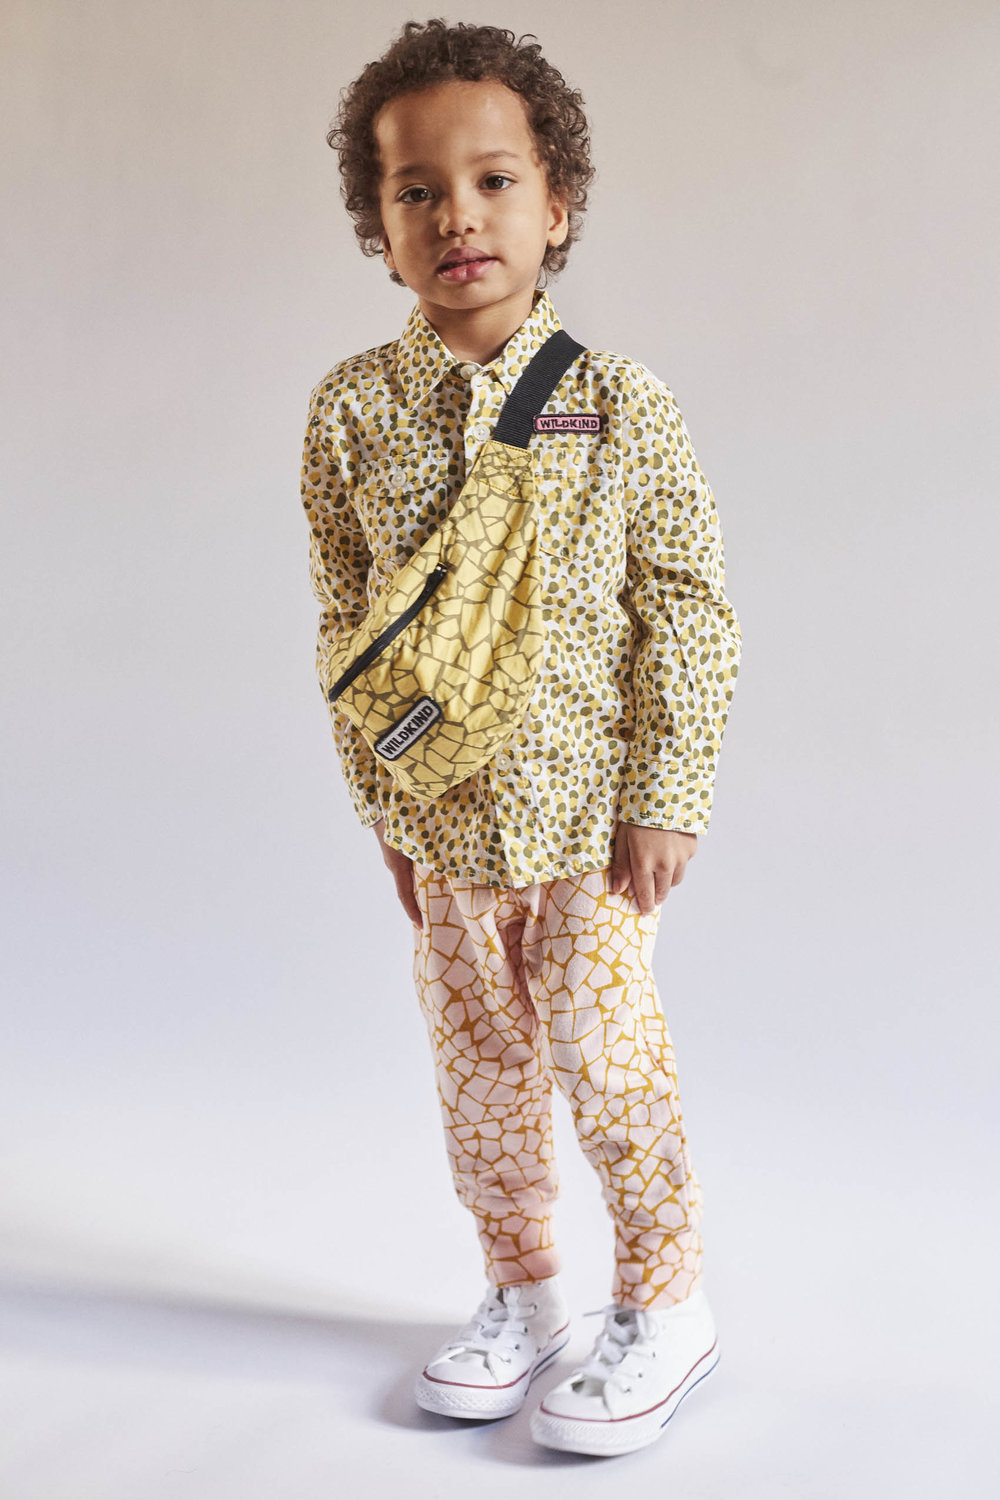 Oskar is 100 cm and wears Jay shirt in Cheetah camo, a size 104/110 .